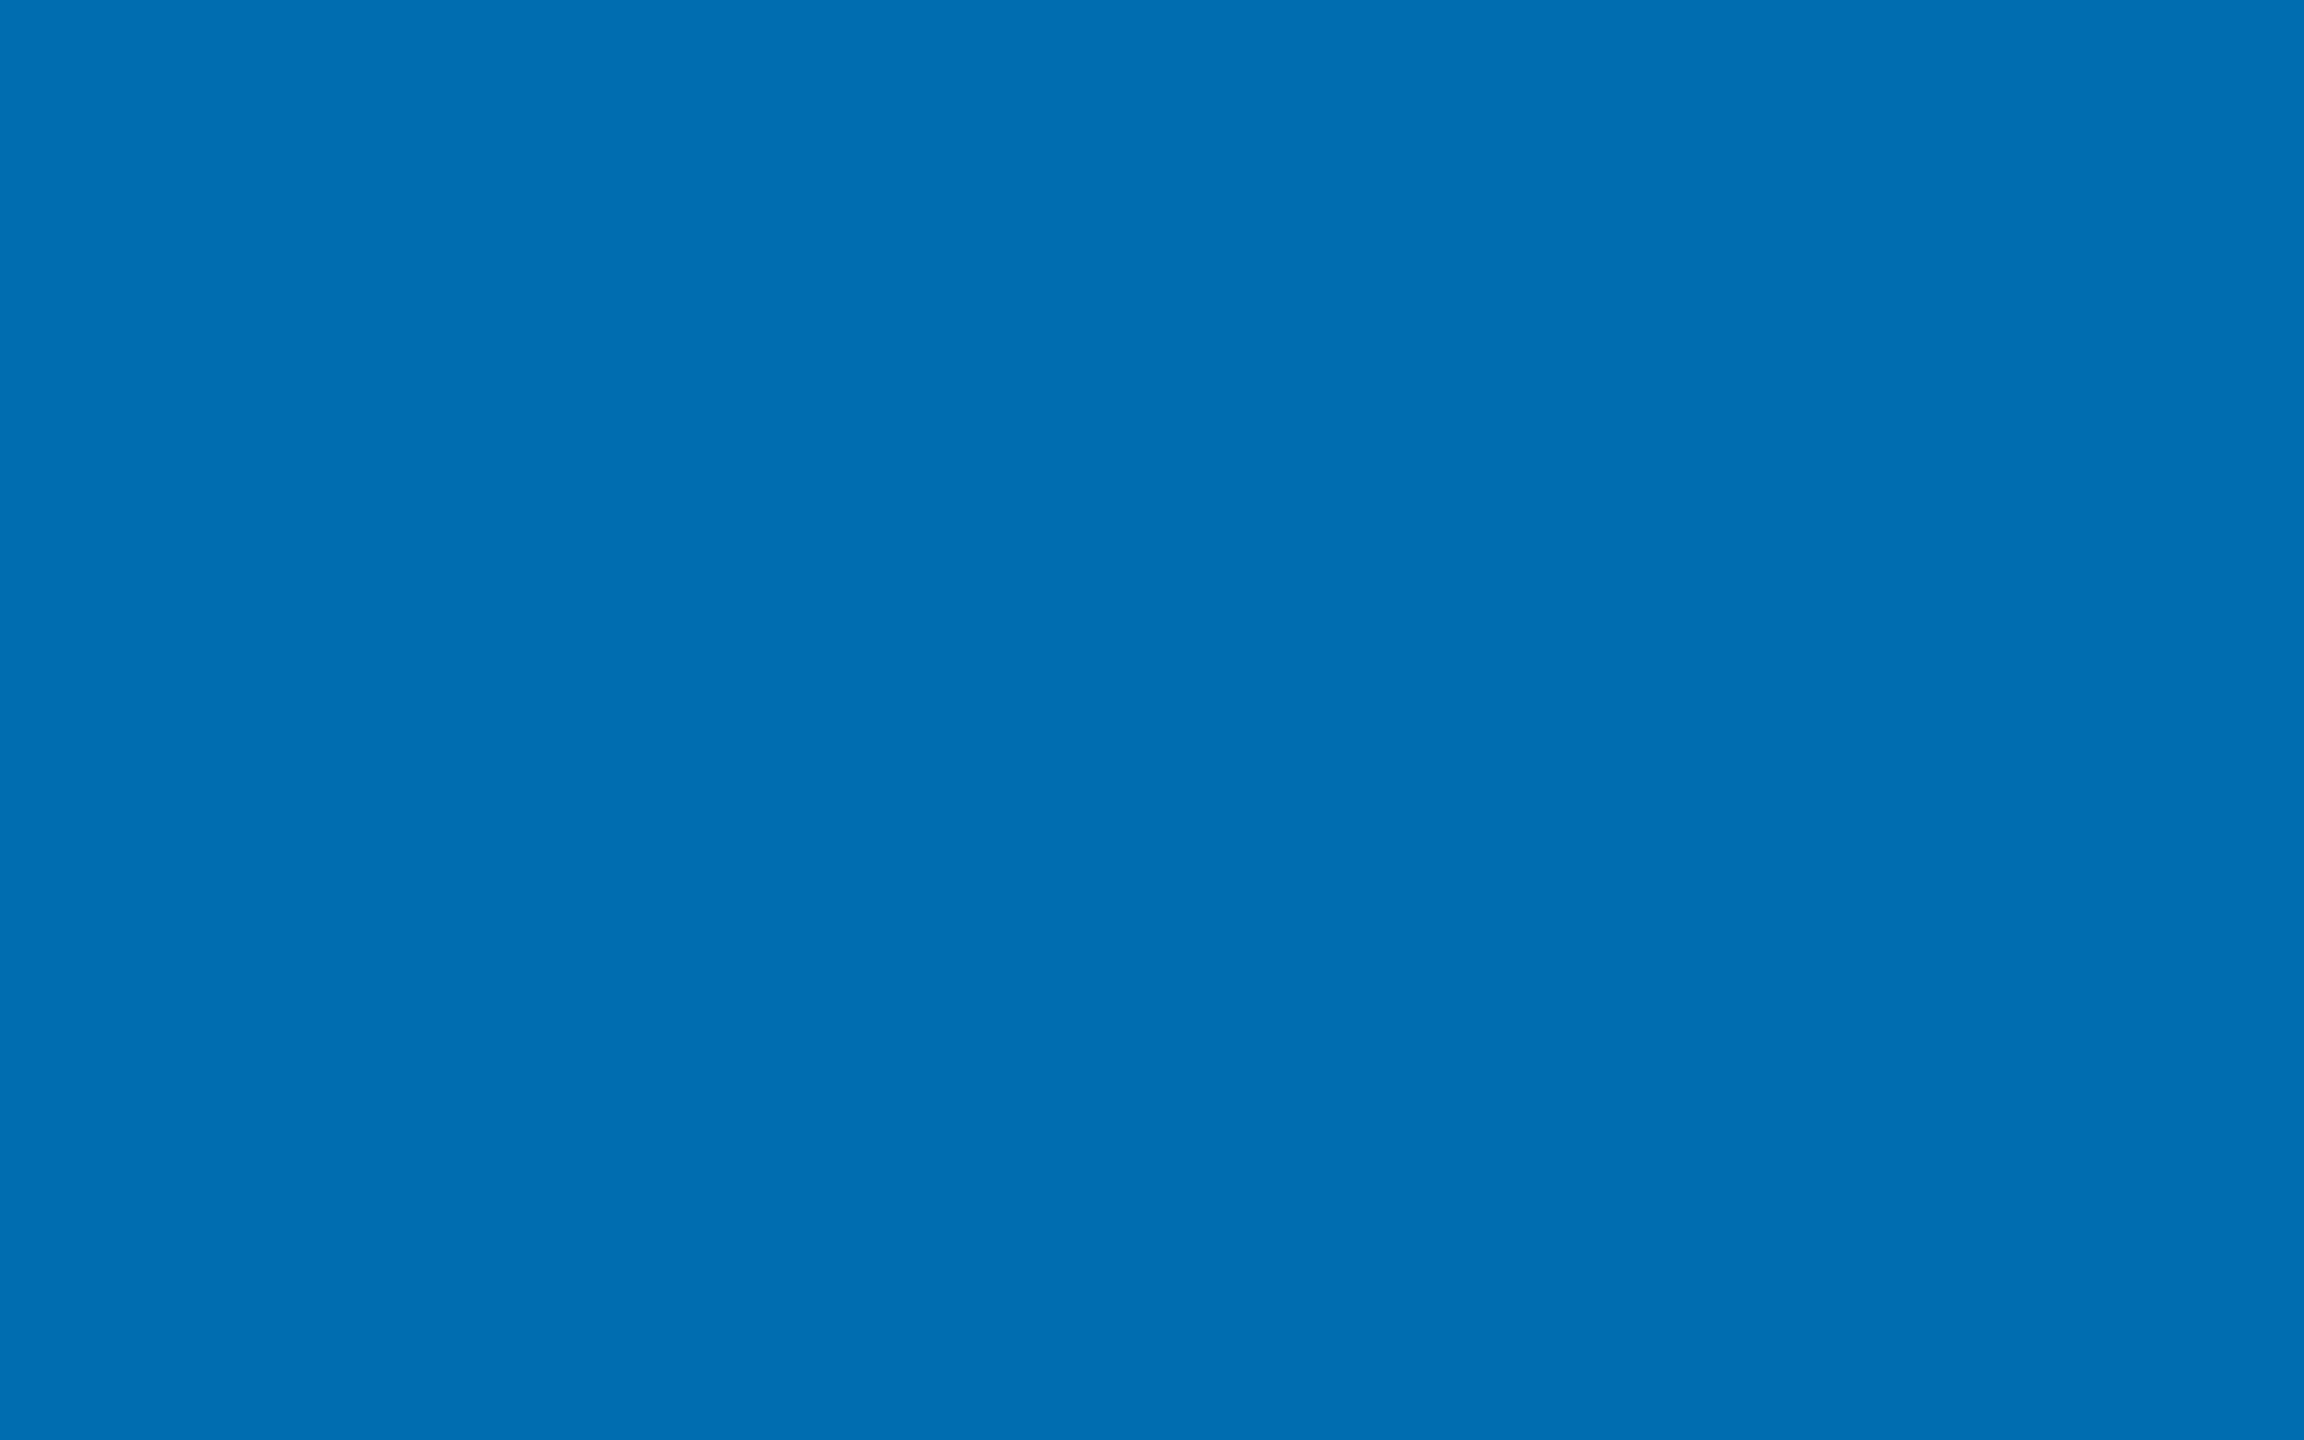 2304x1440 Honolulu Blue Solid Color Background